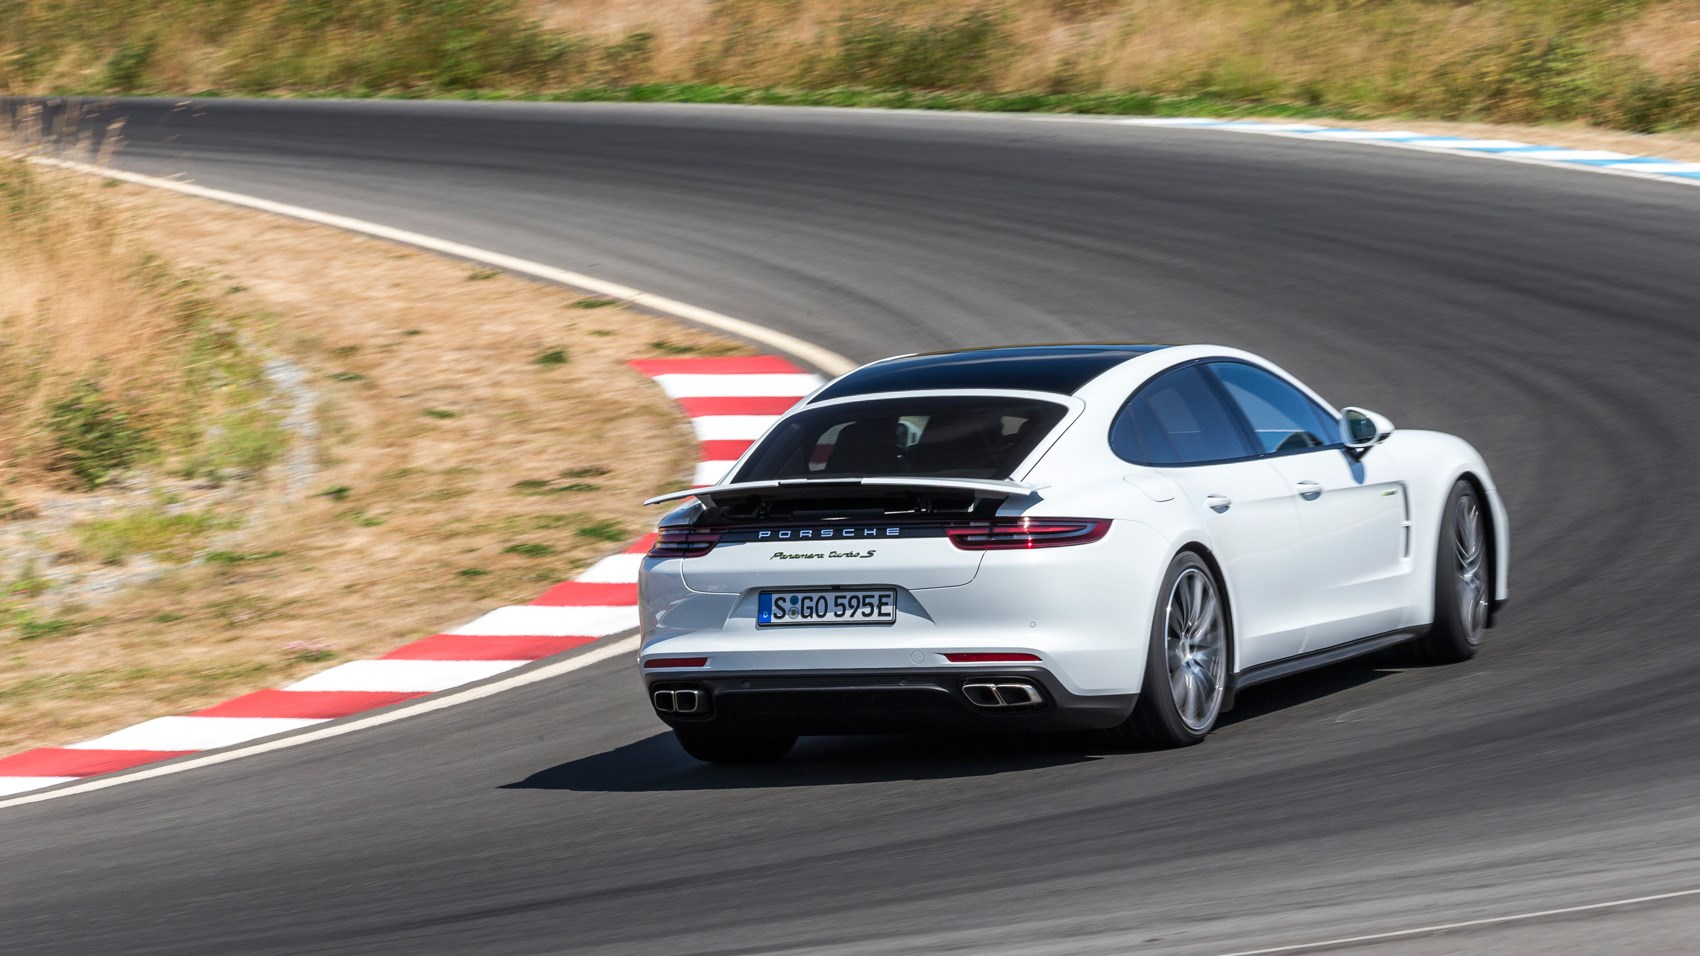 Porsche porsche e hybrid : Porsche Panamera Turbo S E-hybrid (2017) review by CAR Magazine